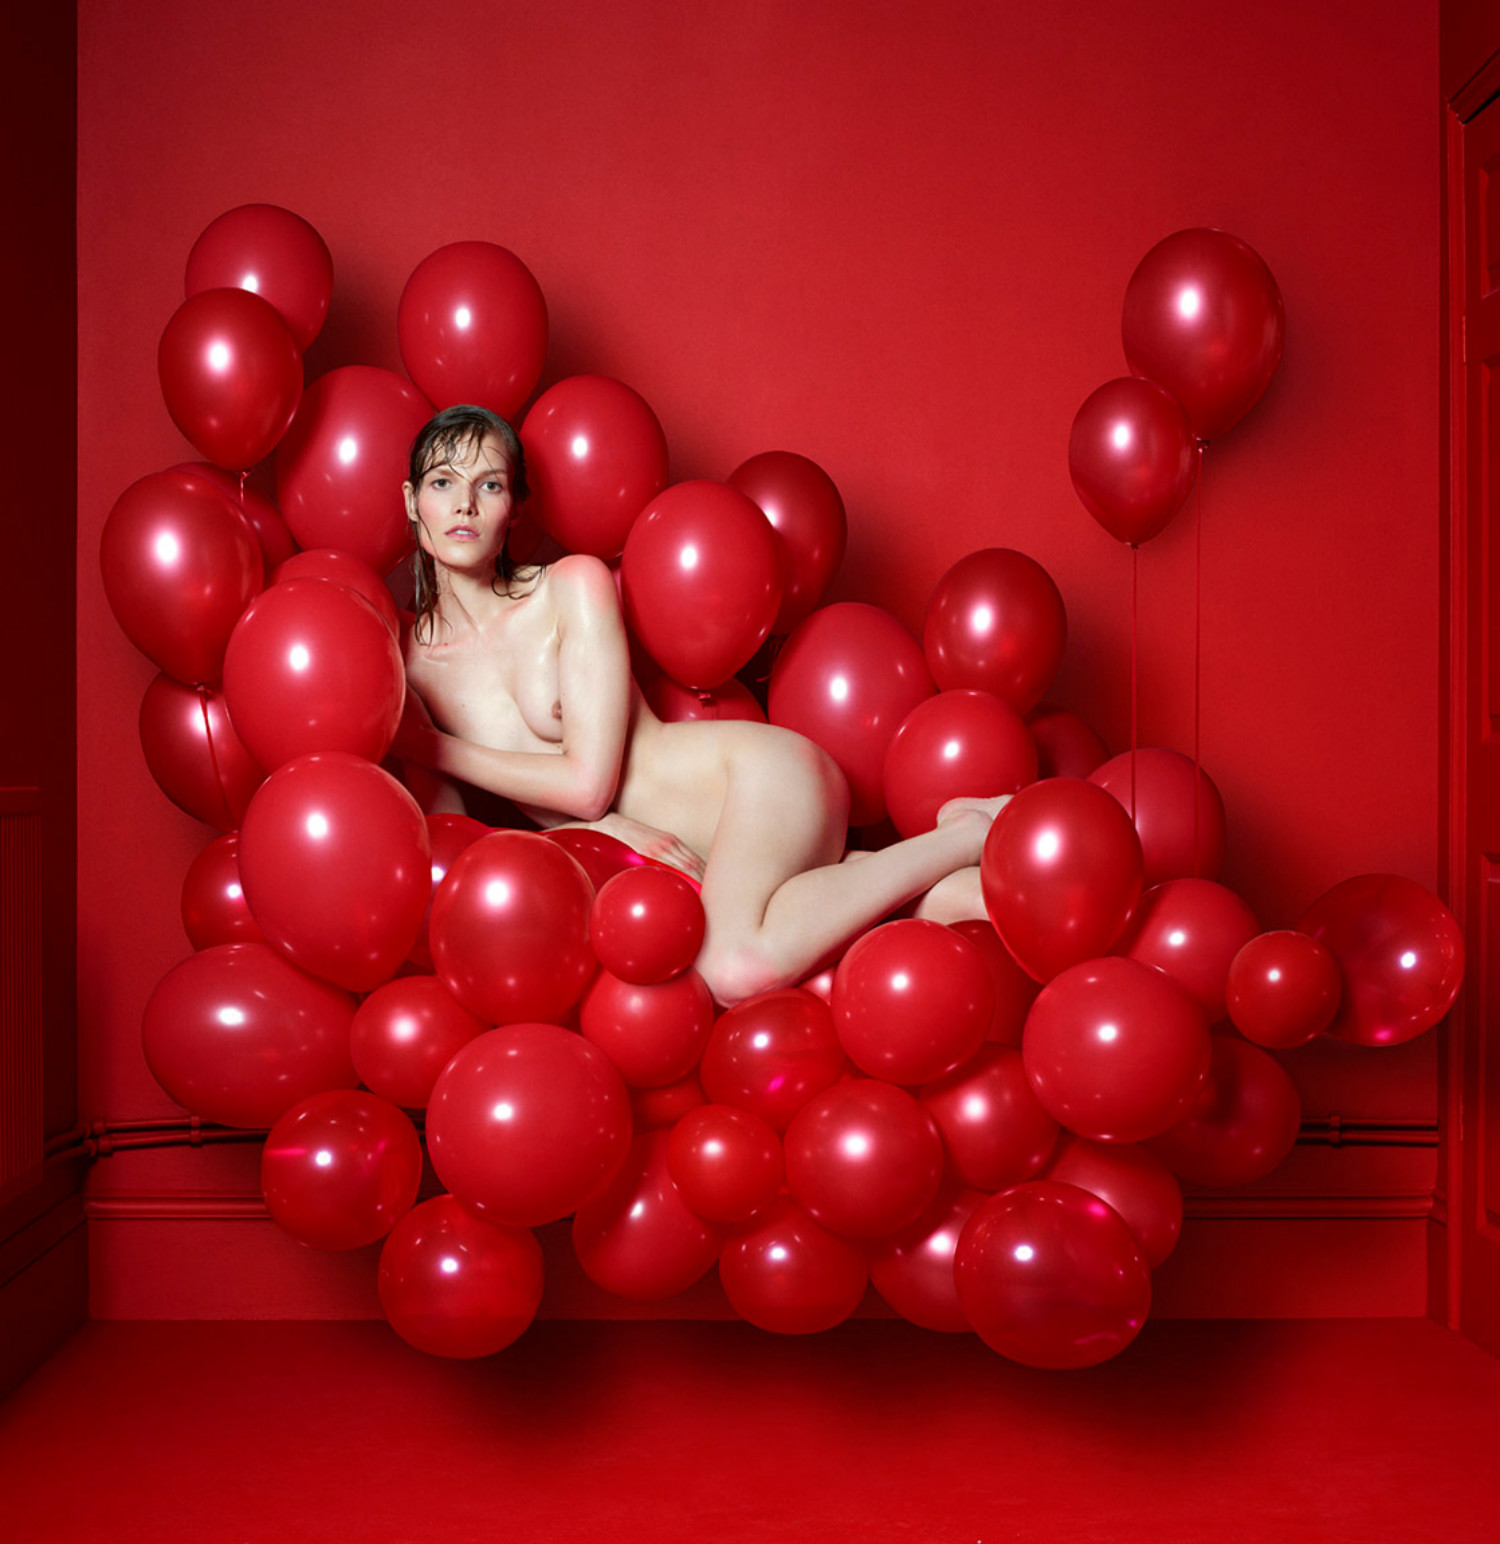 cuneyt akeroglu red room fashion photography erotica mode balloons